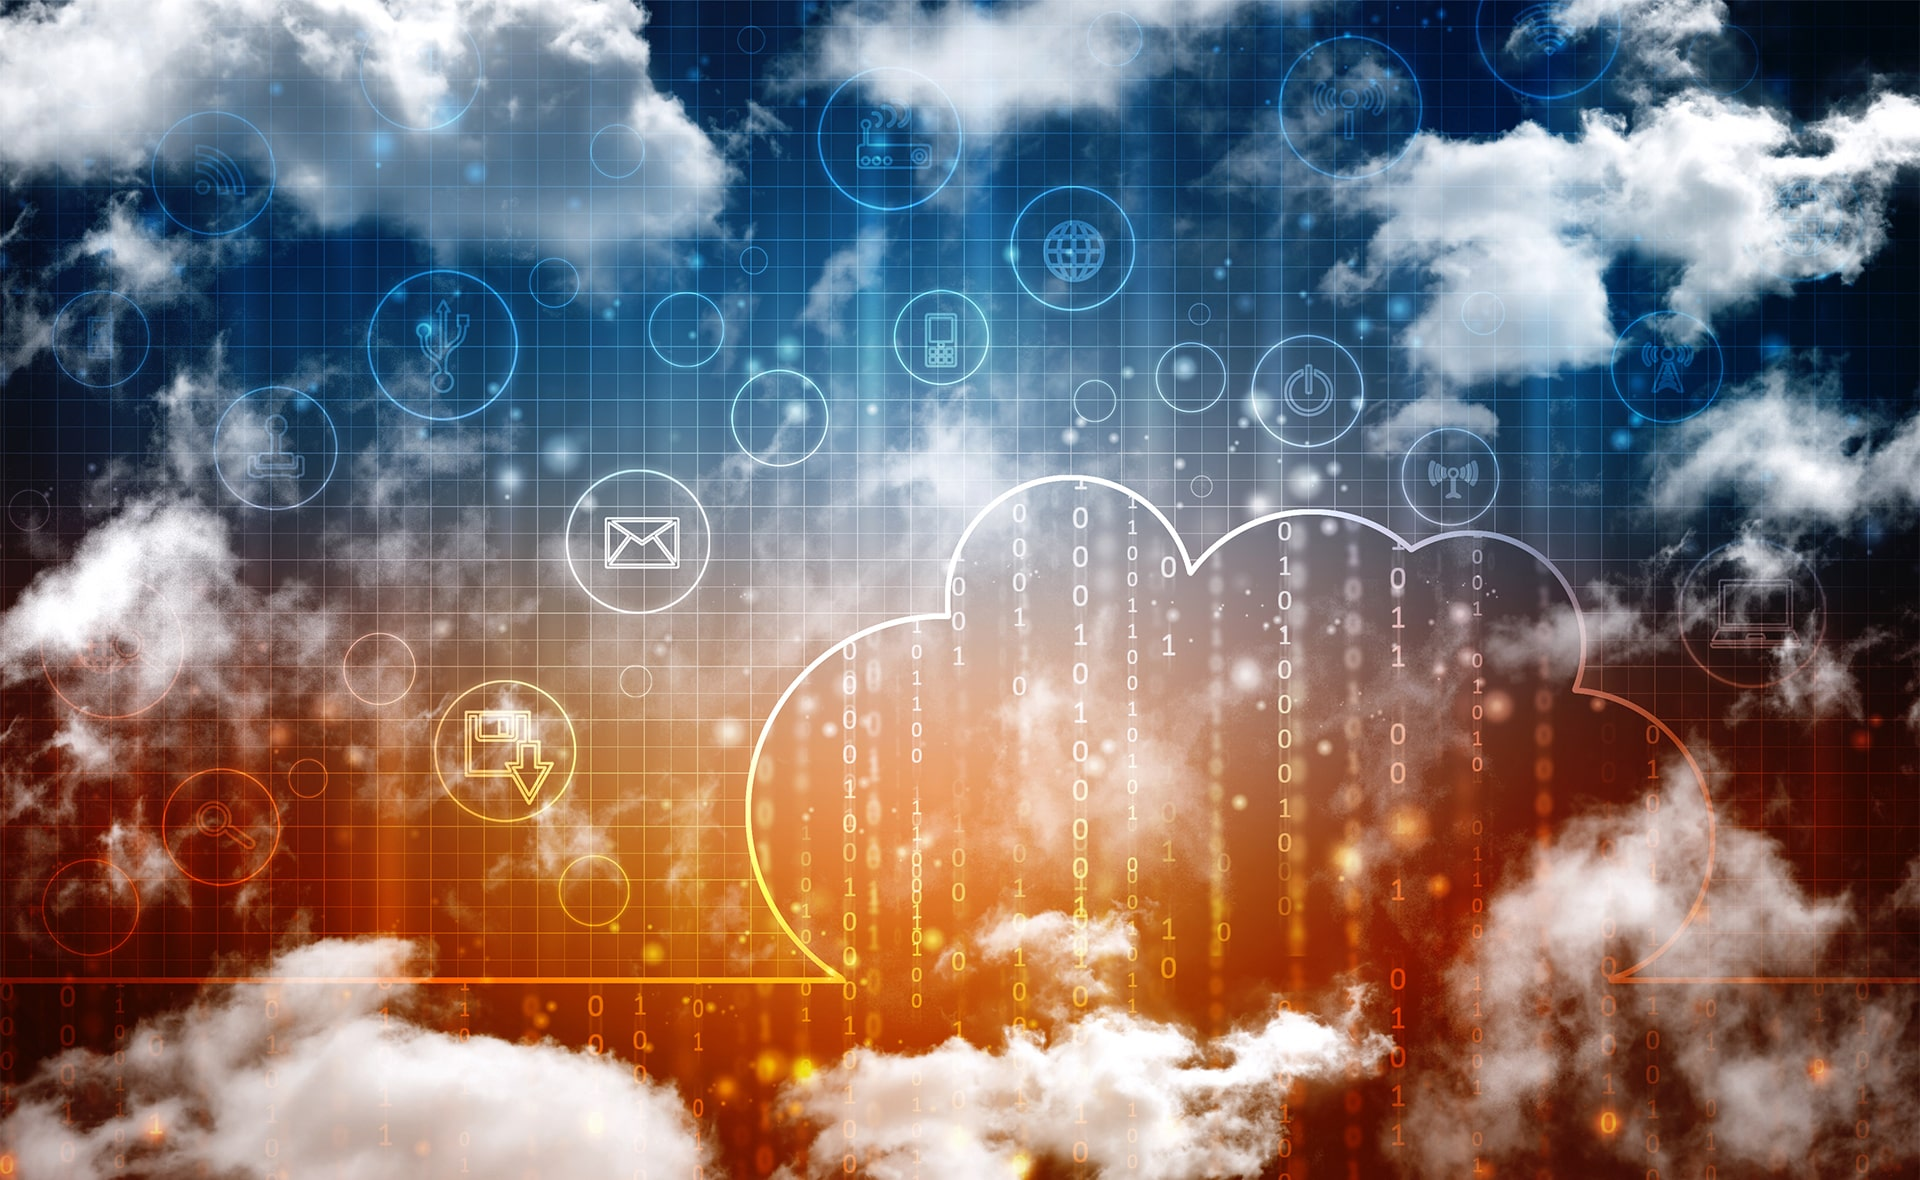 Image showing clouds sourrounding an orange, blue background with technology icons